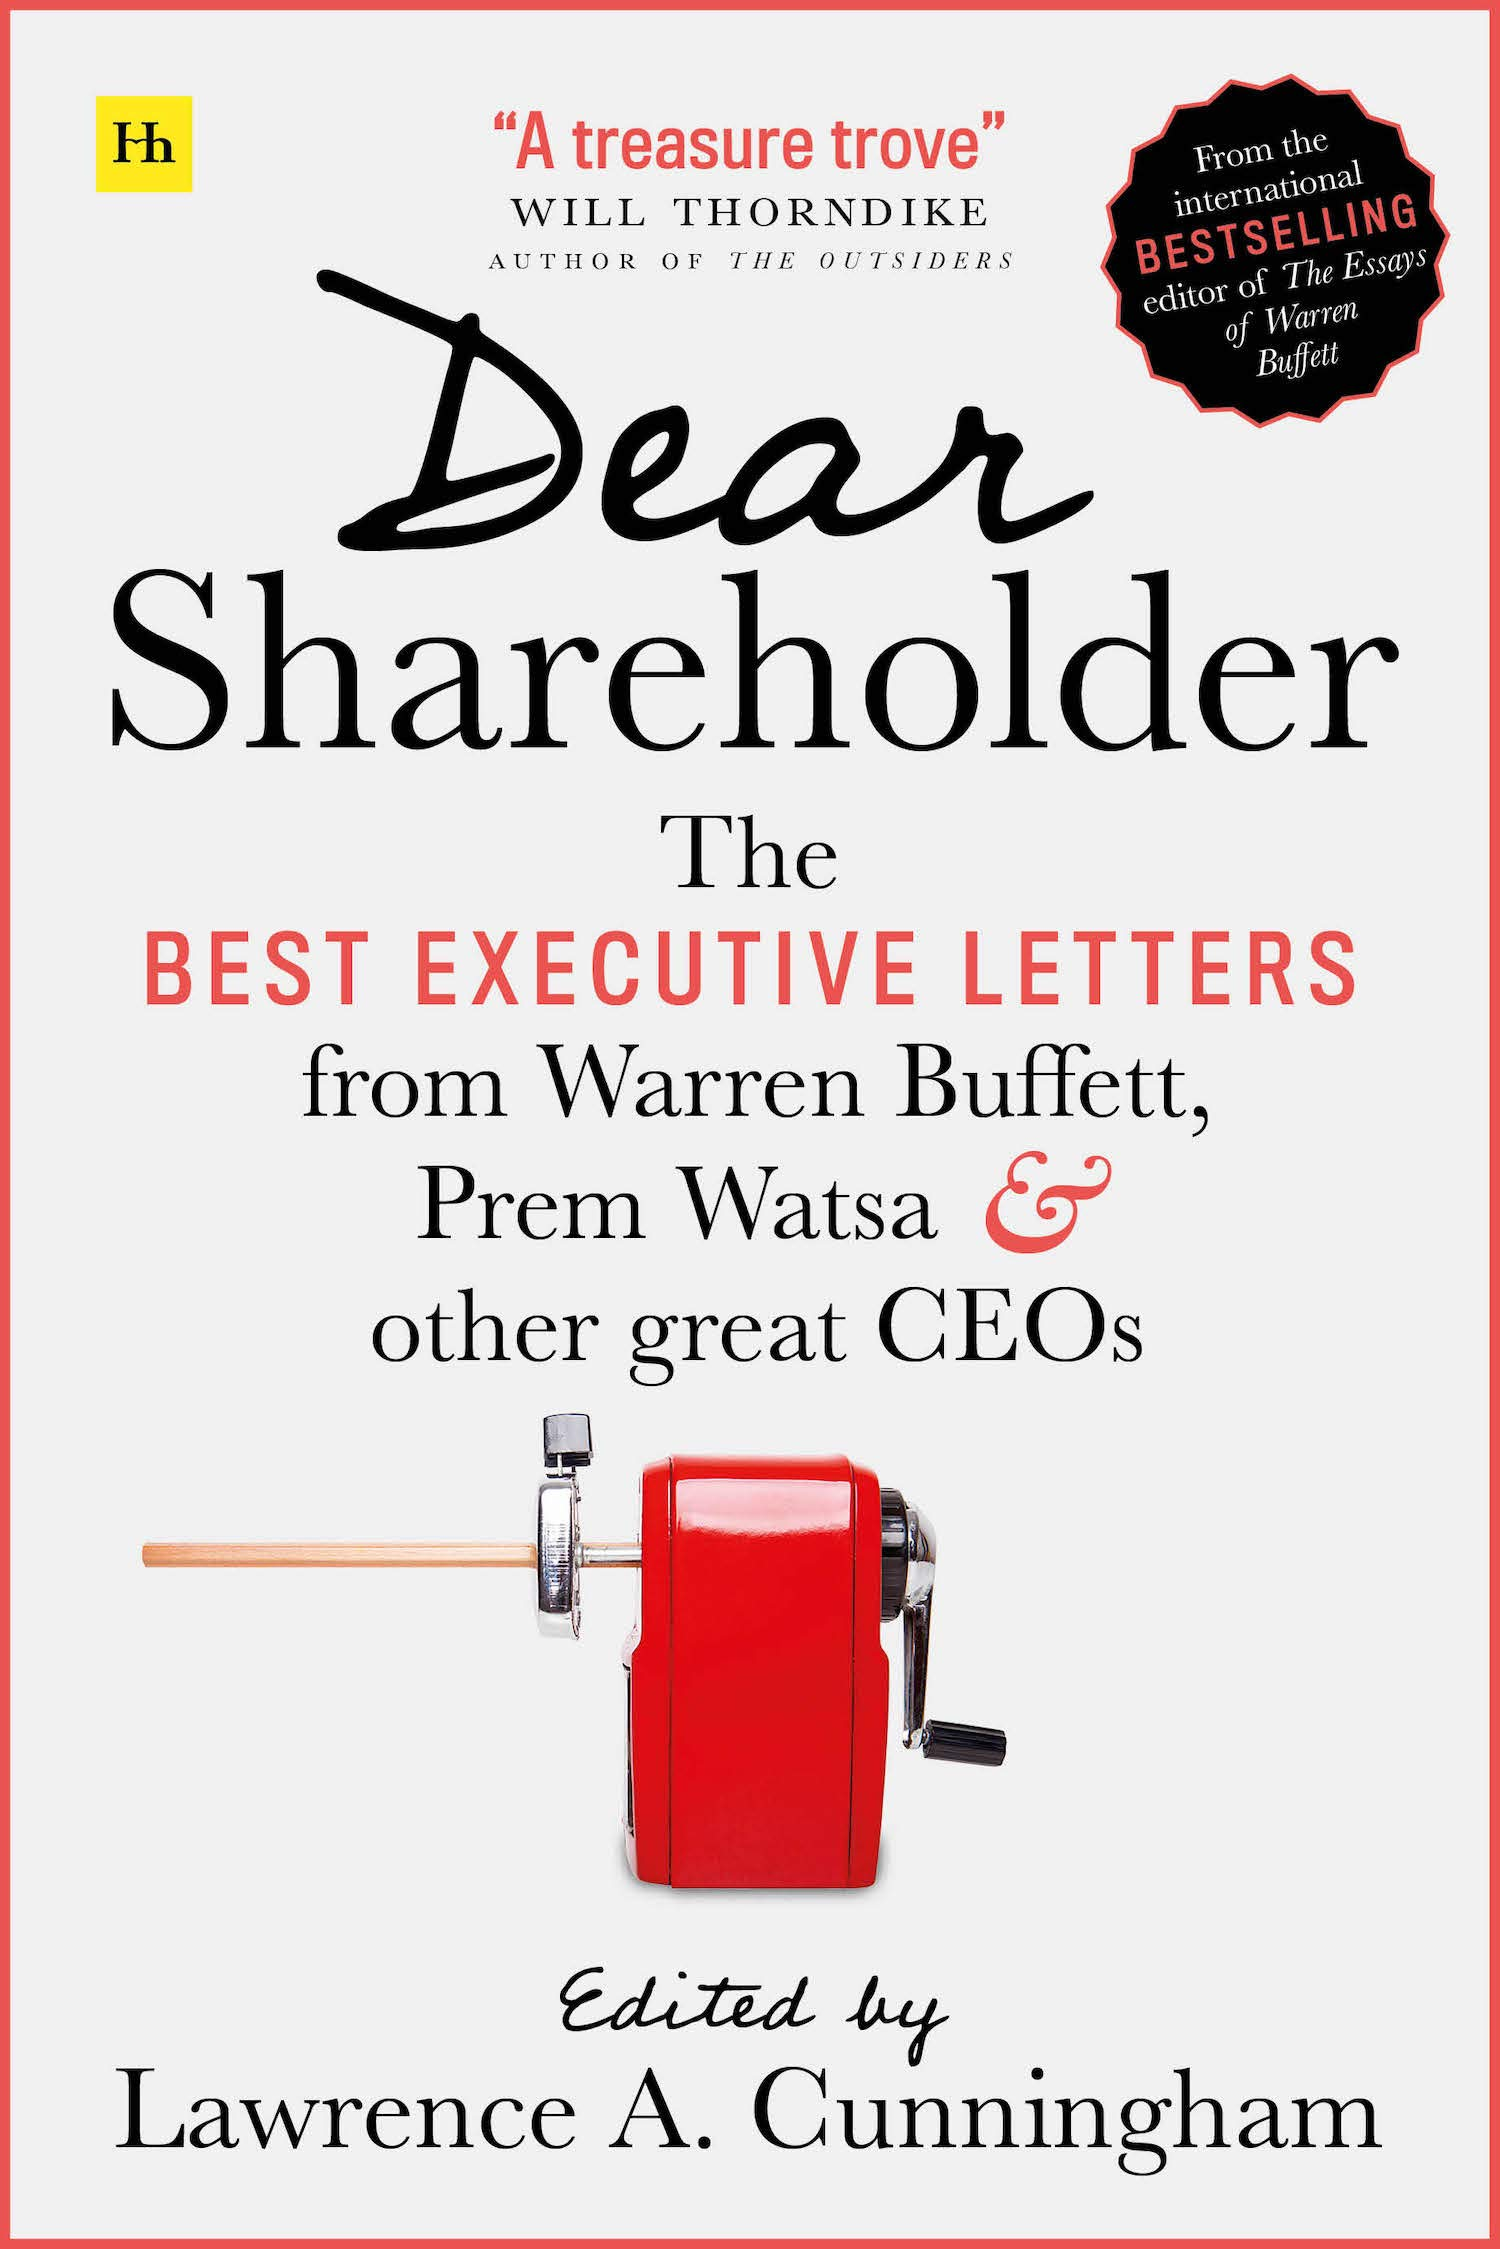 notes-from-student-from-visit-with-buffett-the-wisdom-of-warren-buffett-2